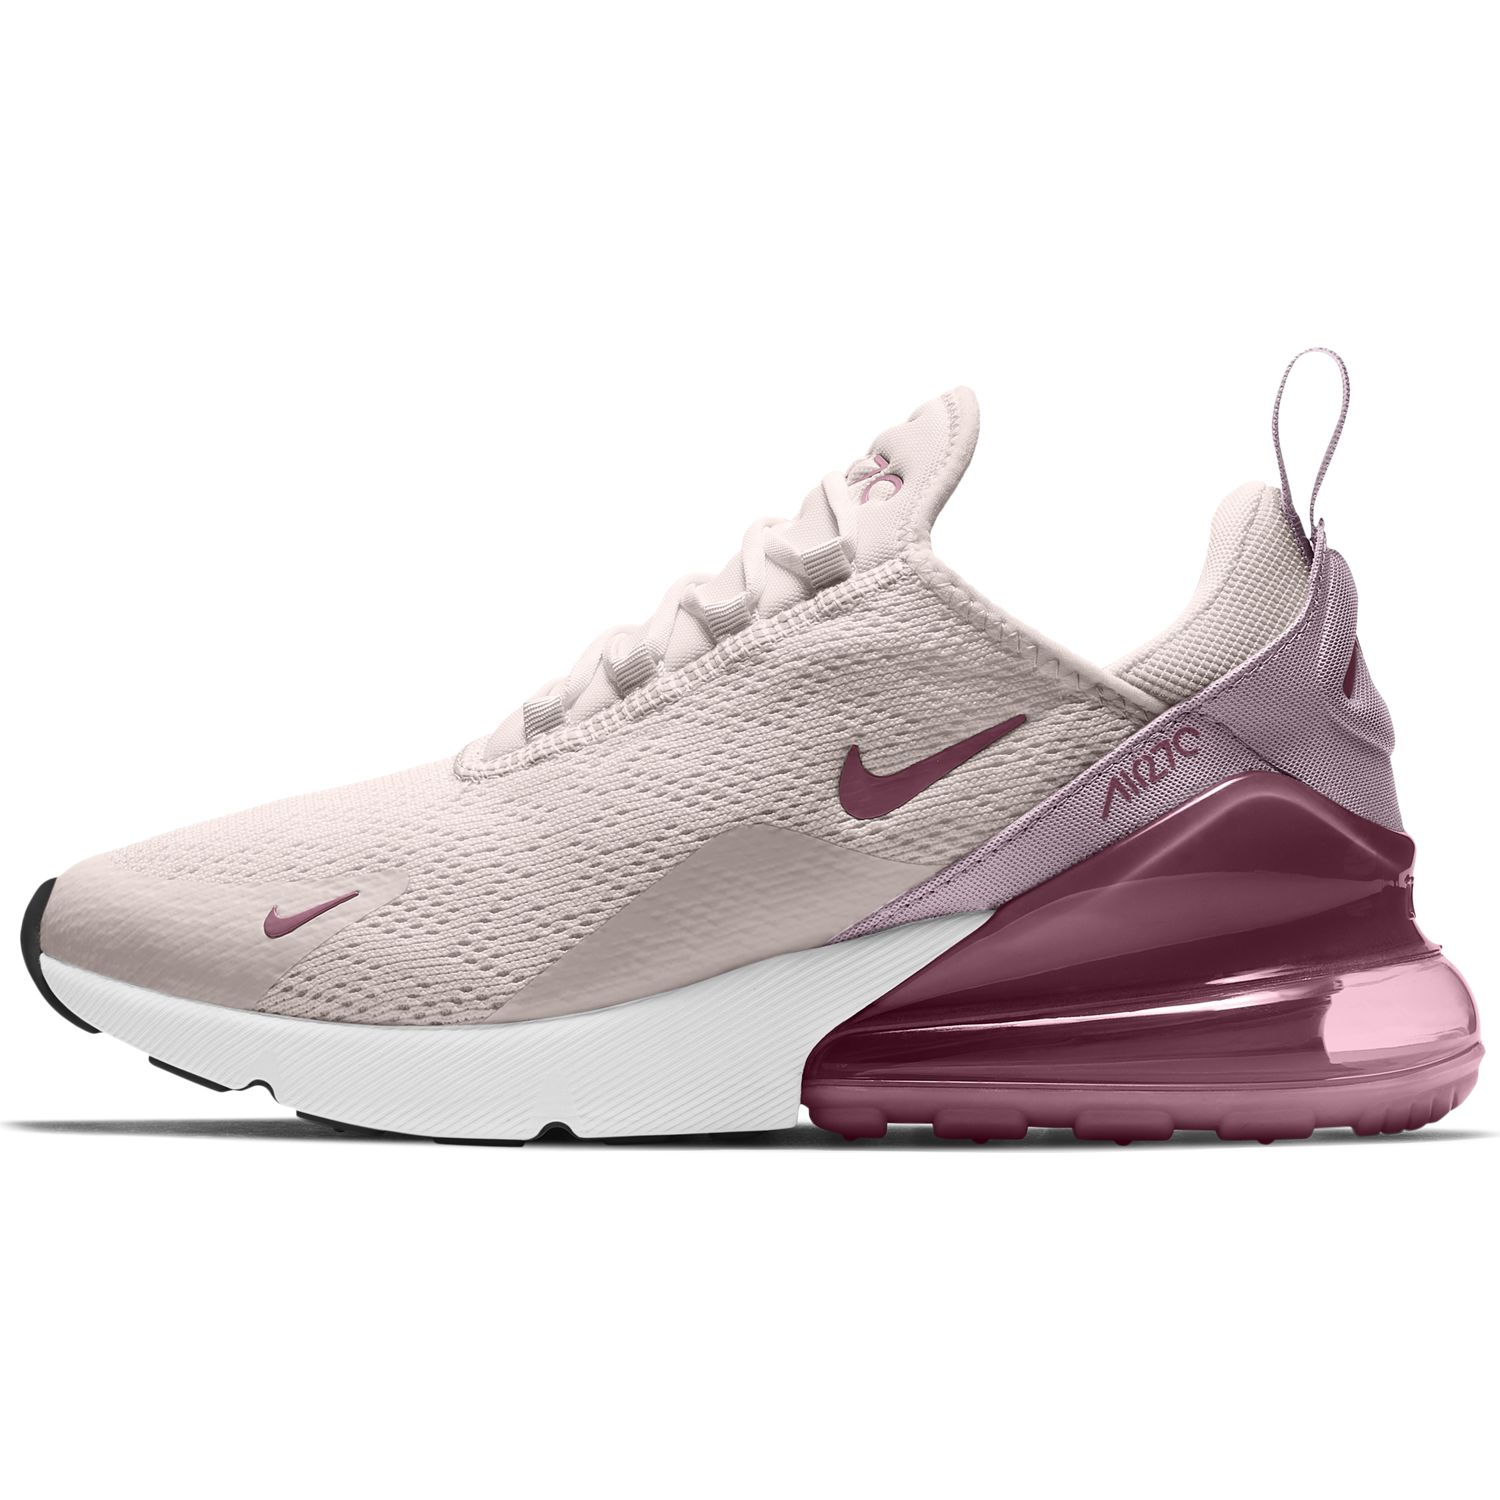 info for 86bb8 bf7c3 ... 41 748a9 61436 discount buty damskie nike air max 270 barely rose  ah6789 601 kliknij aby powikszy 0d98c 6cfd0 ...